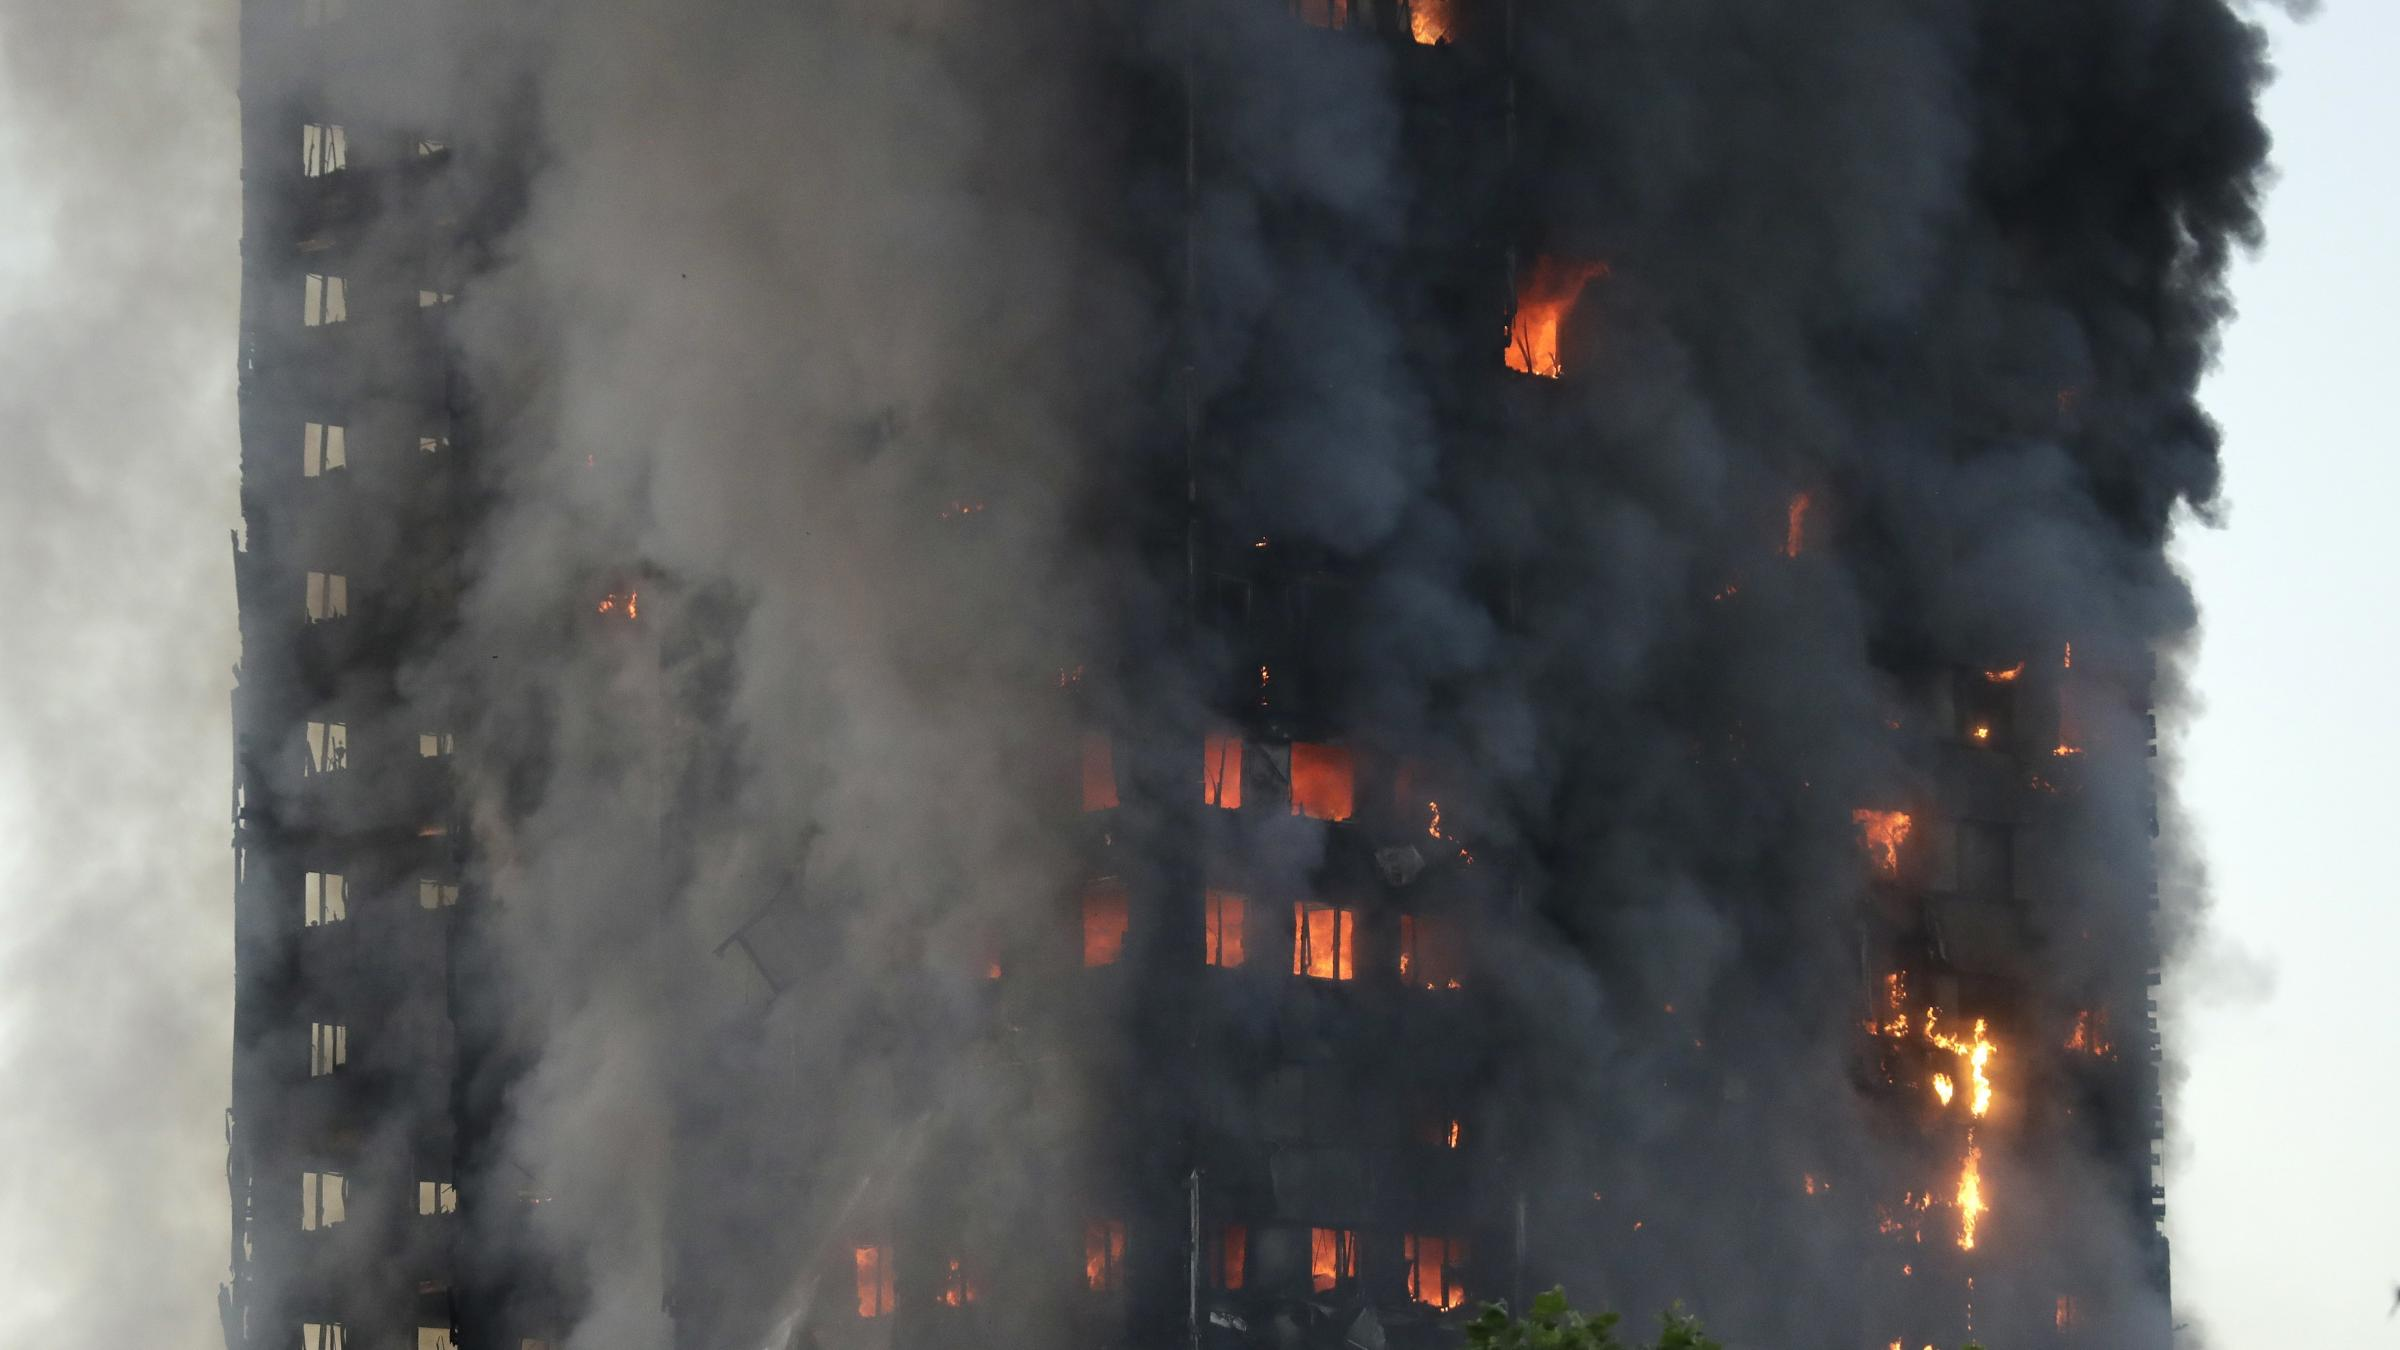 Here is what we know about the West London residential tower inferno